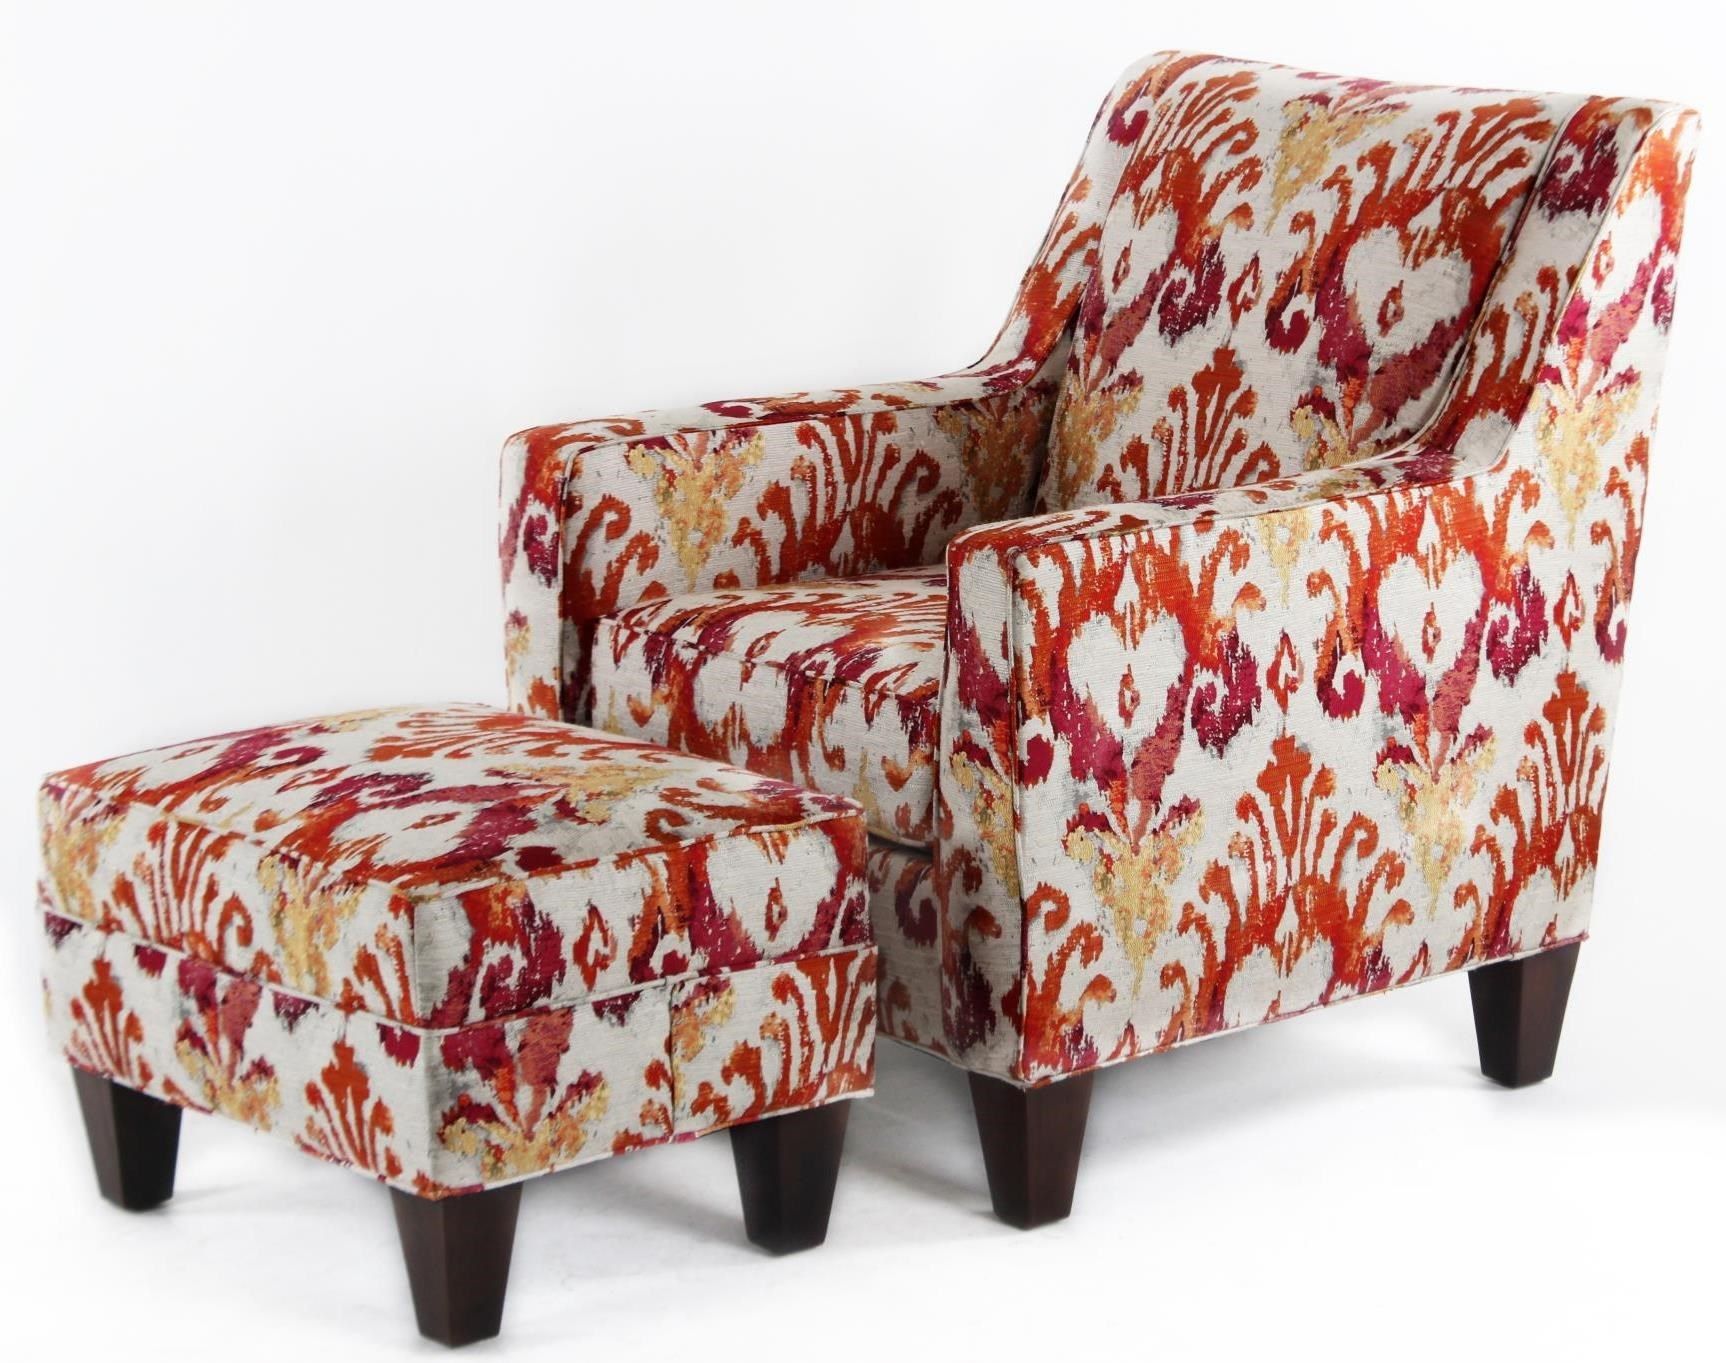 Charming CMI Classic Chair Accents Casual Chair And Ottoman Set   Hudsonu0027s Furniture    Chair U0026 Ottoman Sets